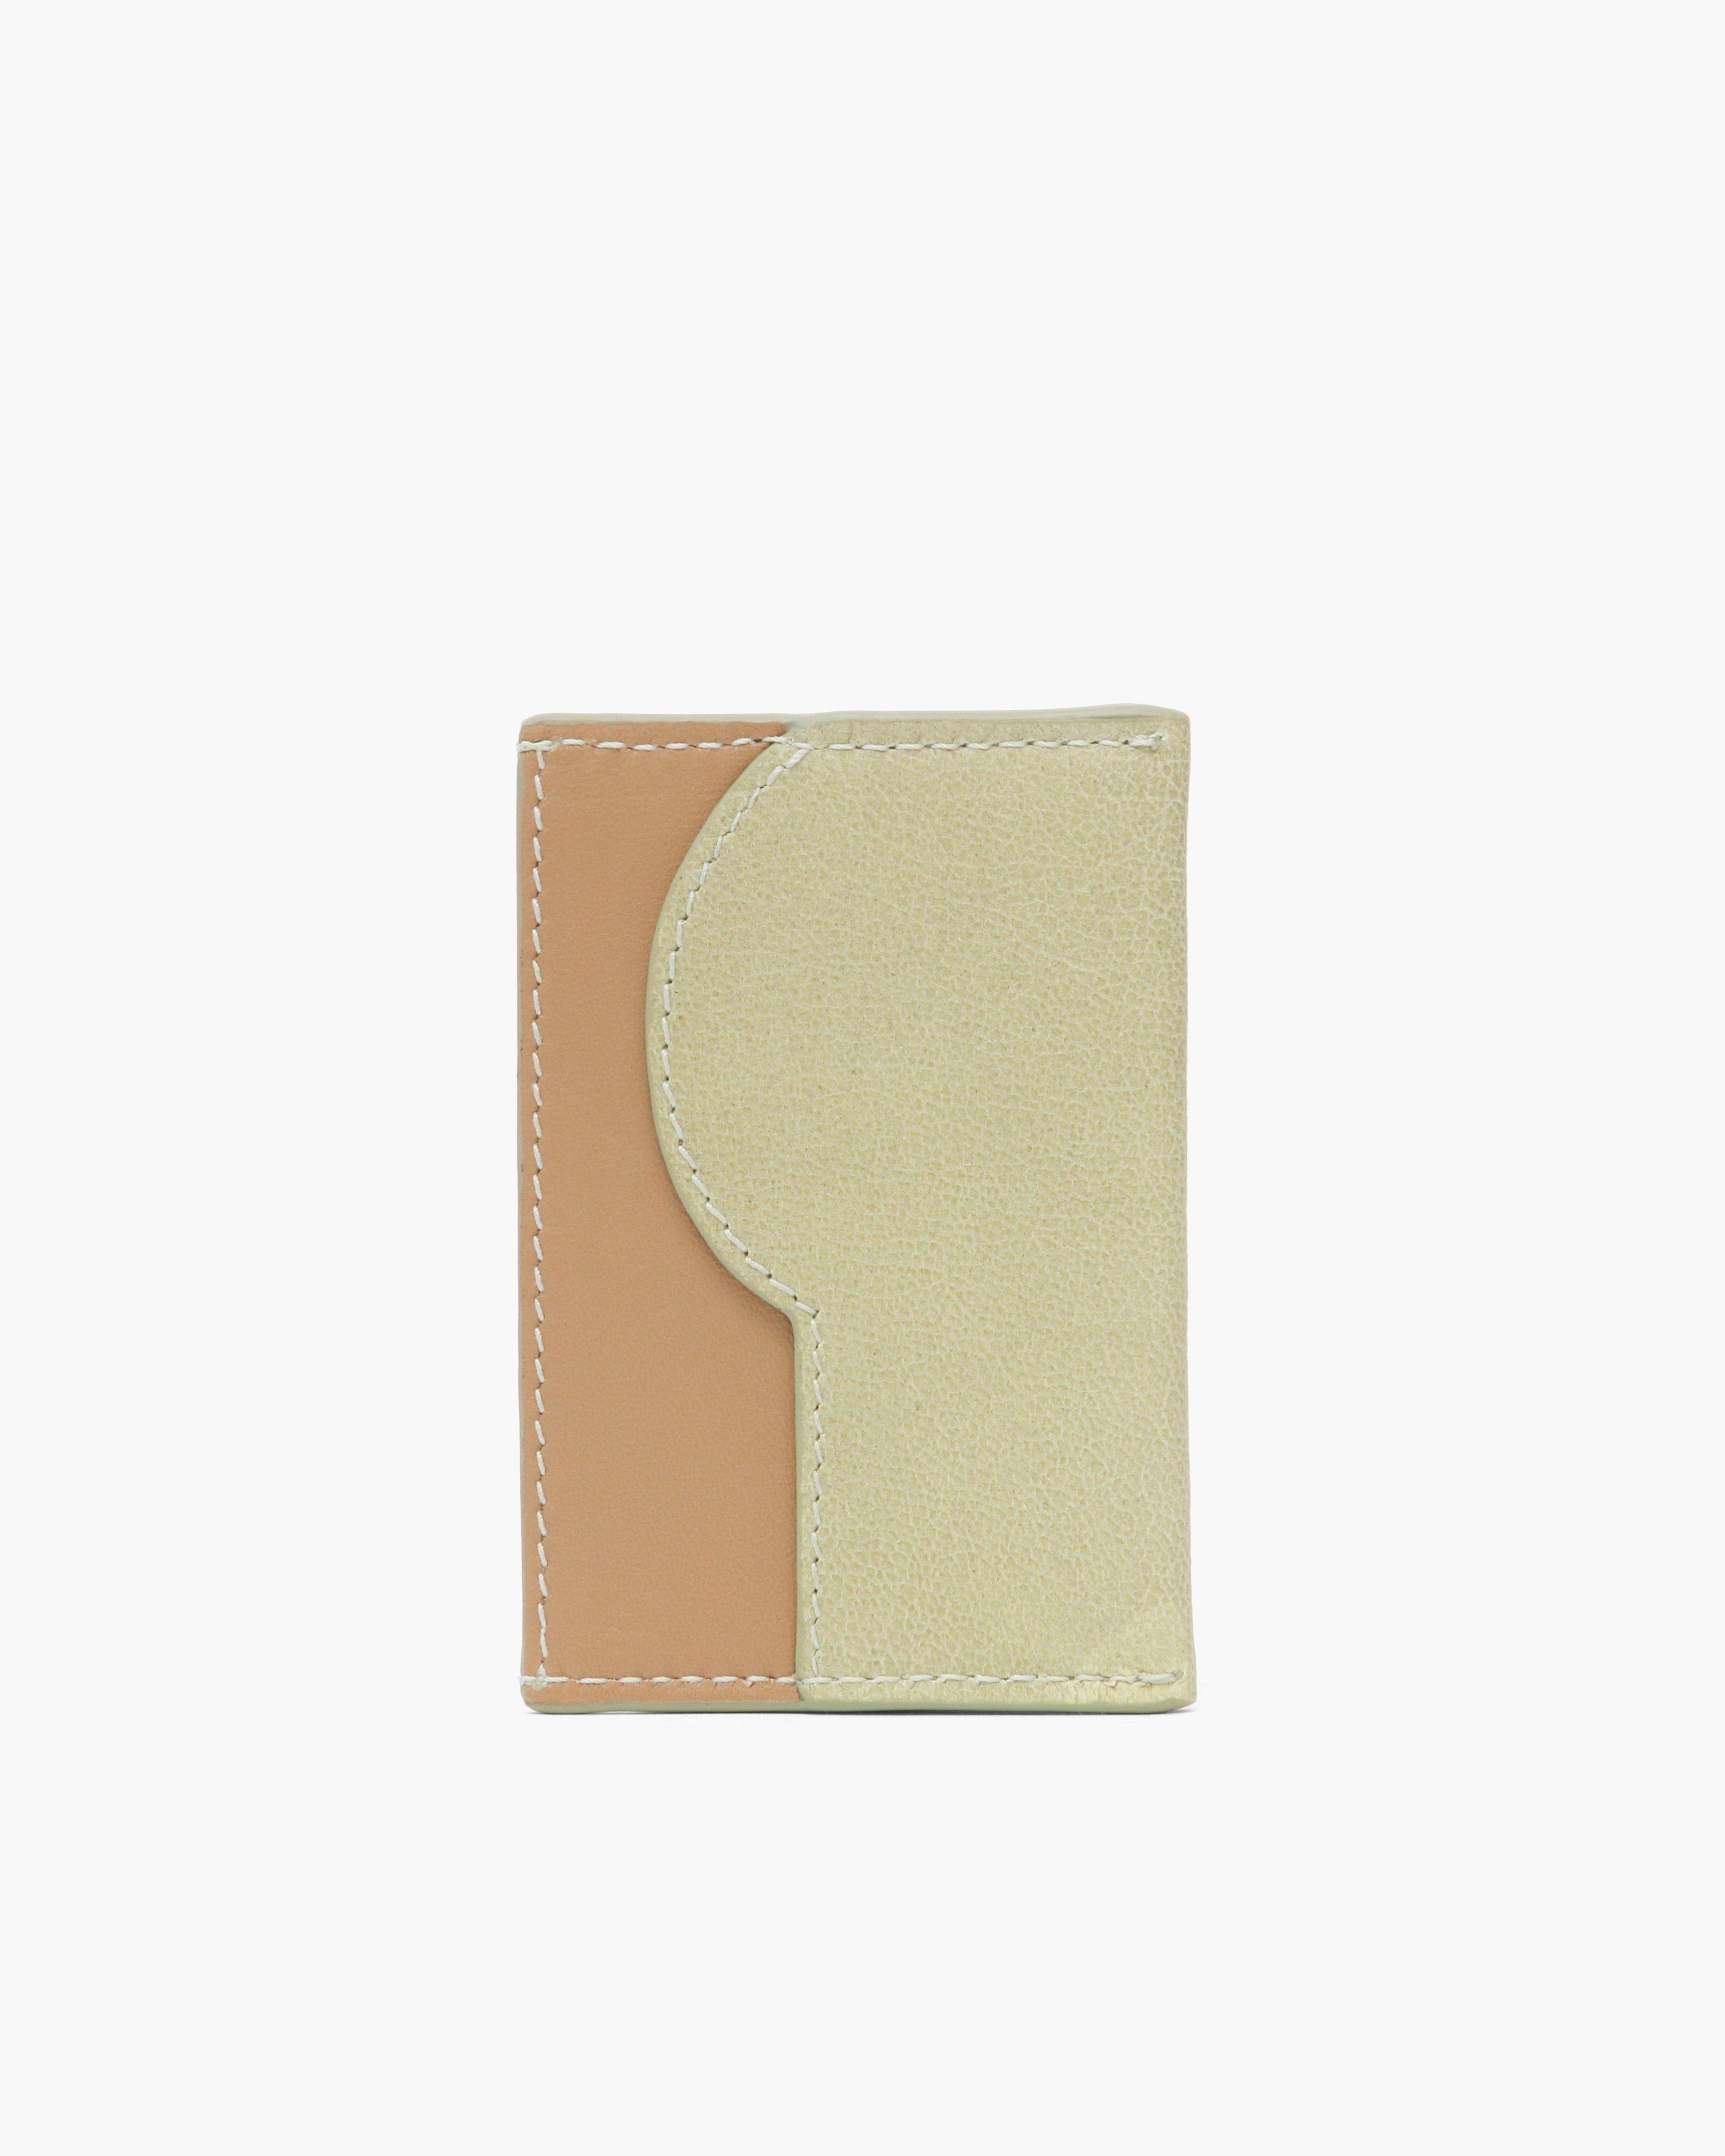 RP Card Holder Leather Citrus Green + Nappa Almond 1